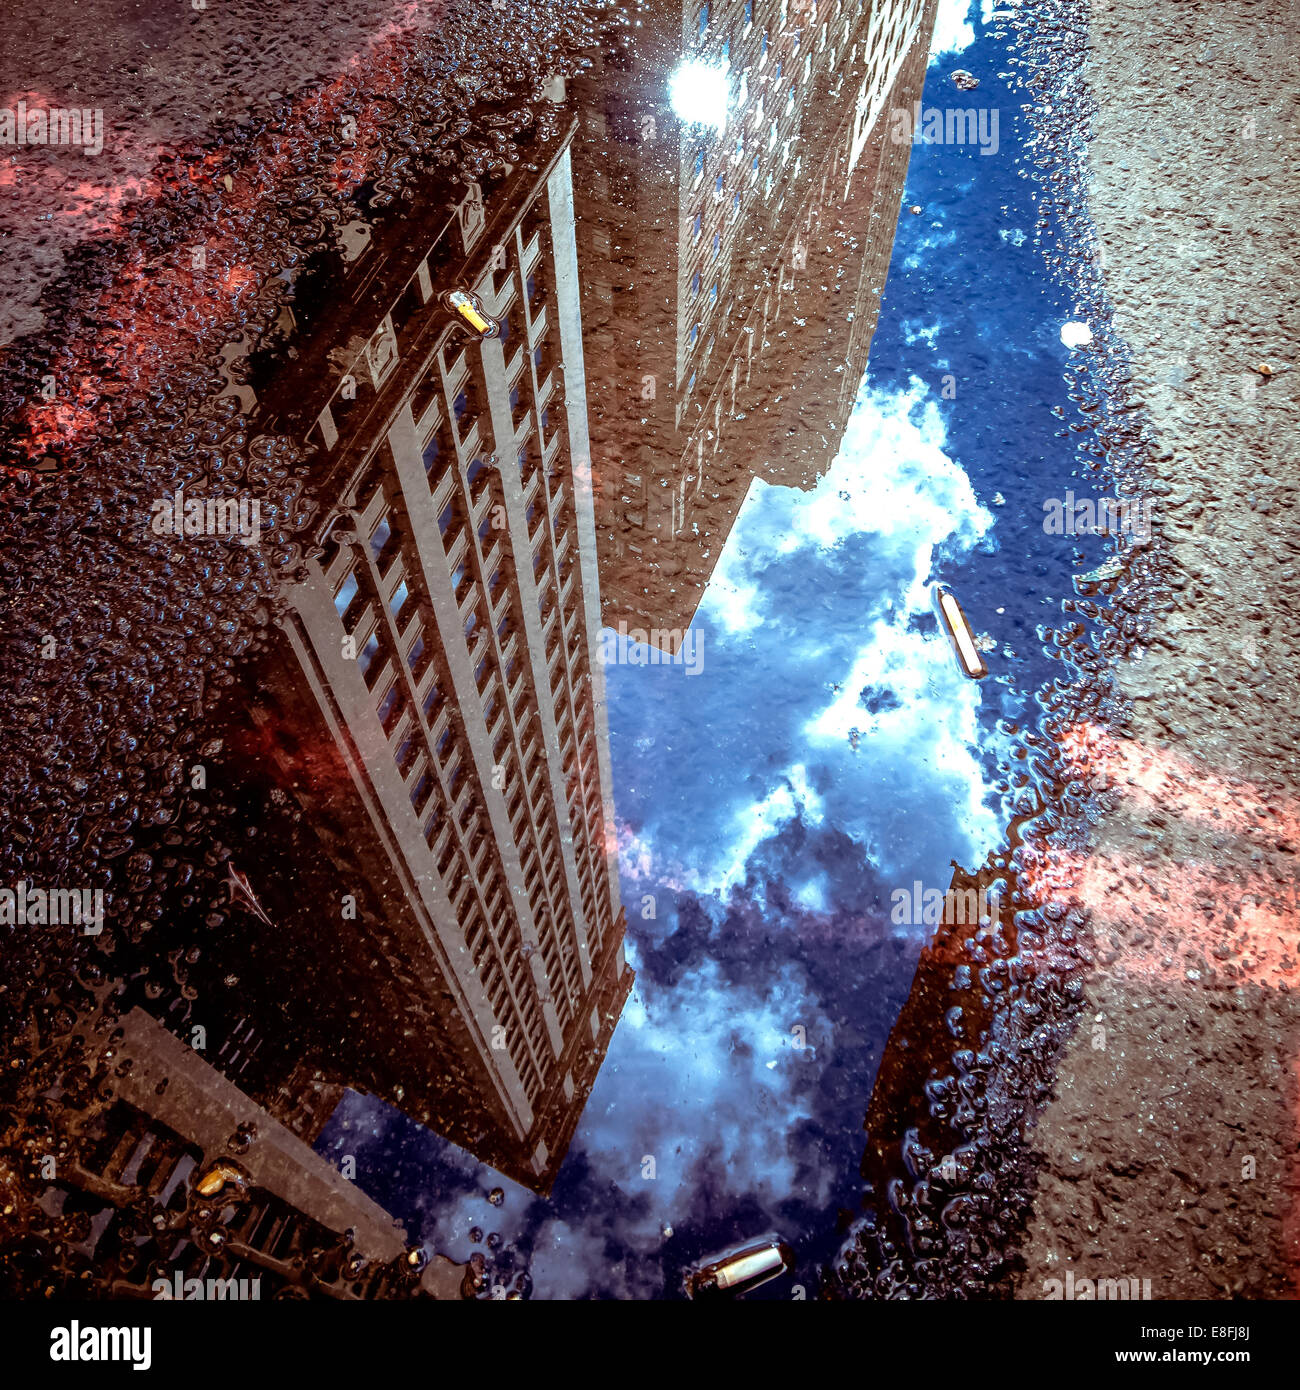 Skyscraper reflections in puddle, New York, America, USA - Stock Image